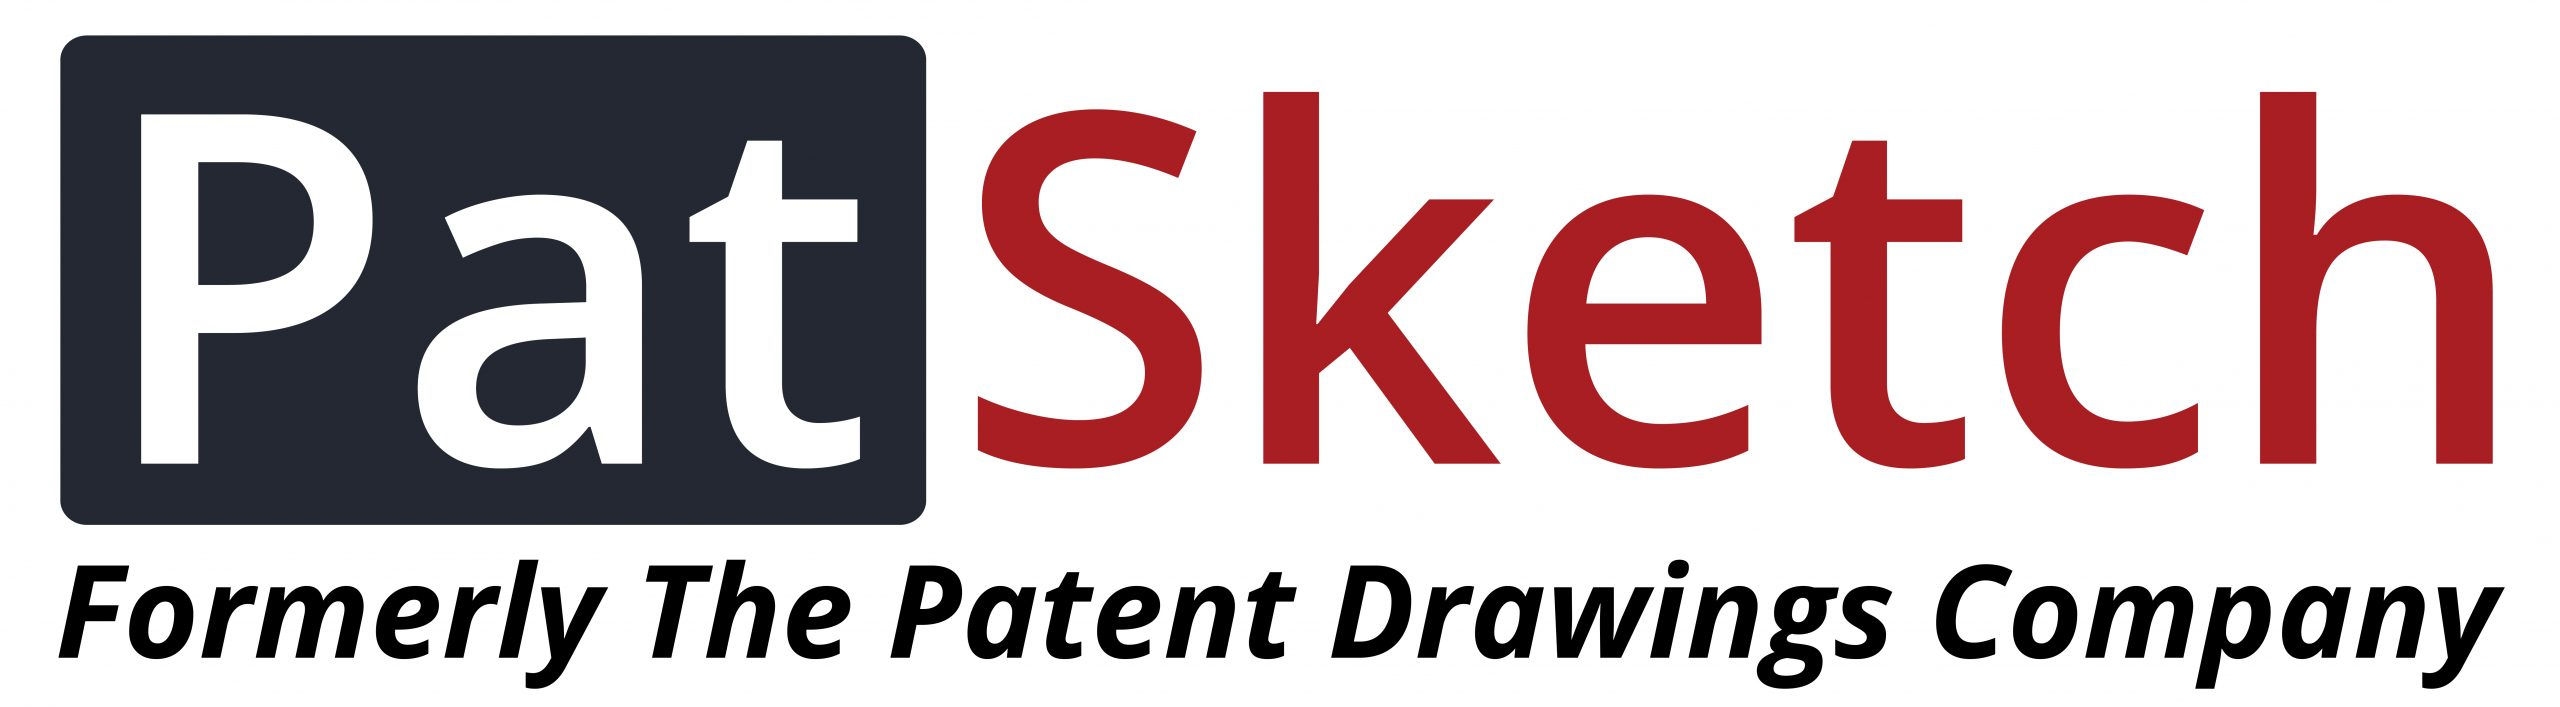 PatSketch (Formerly The Patent Drawings Company)